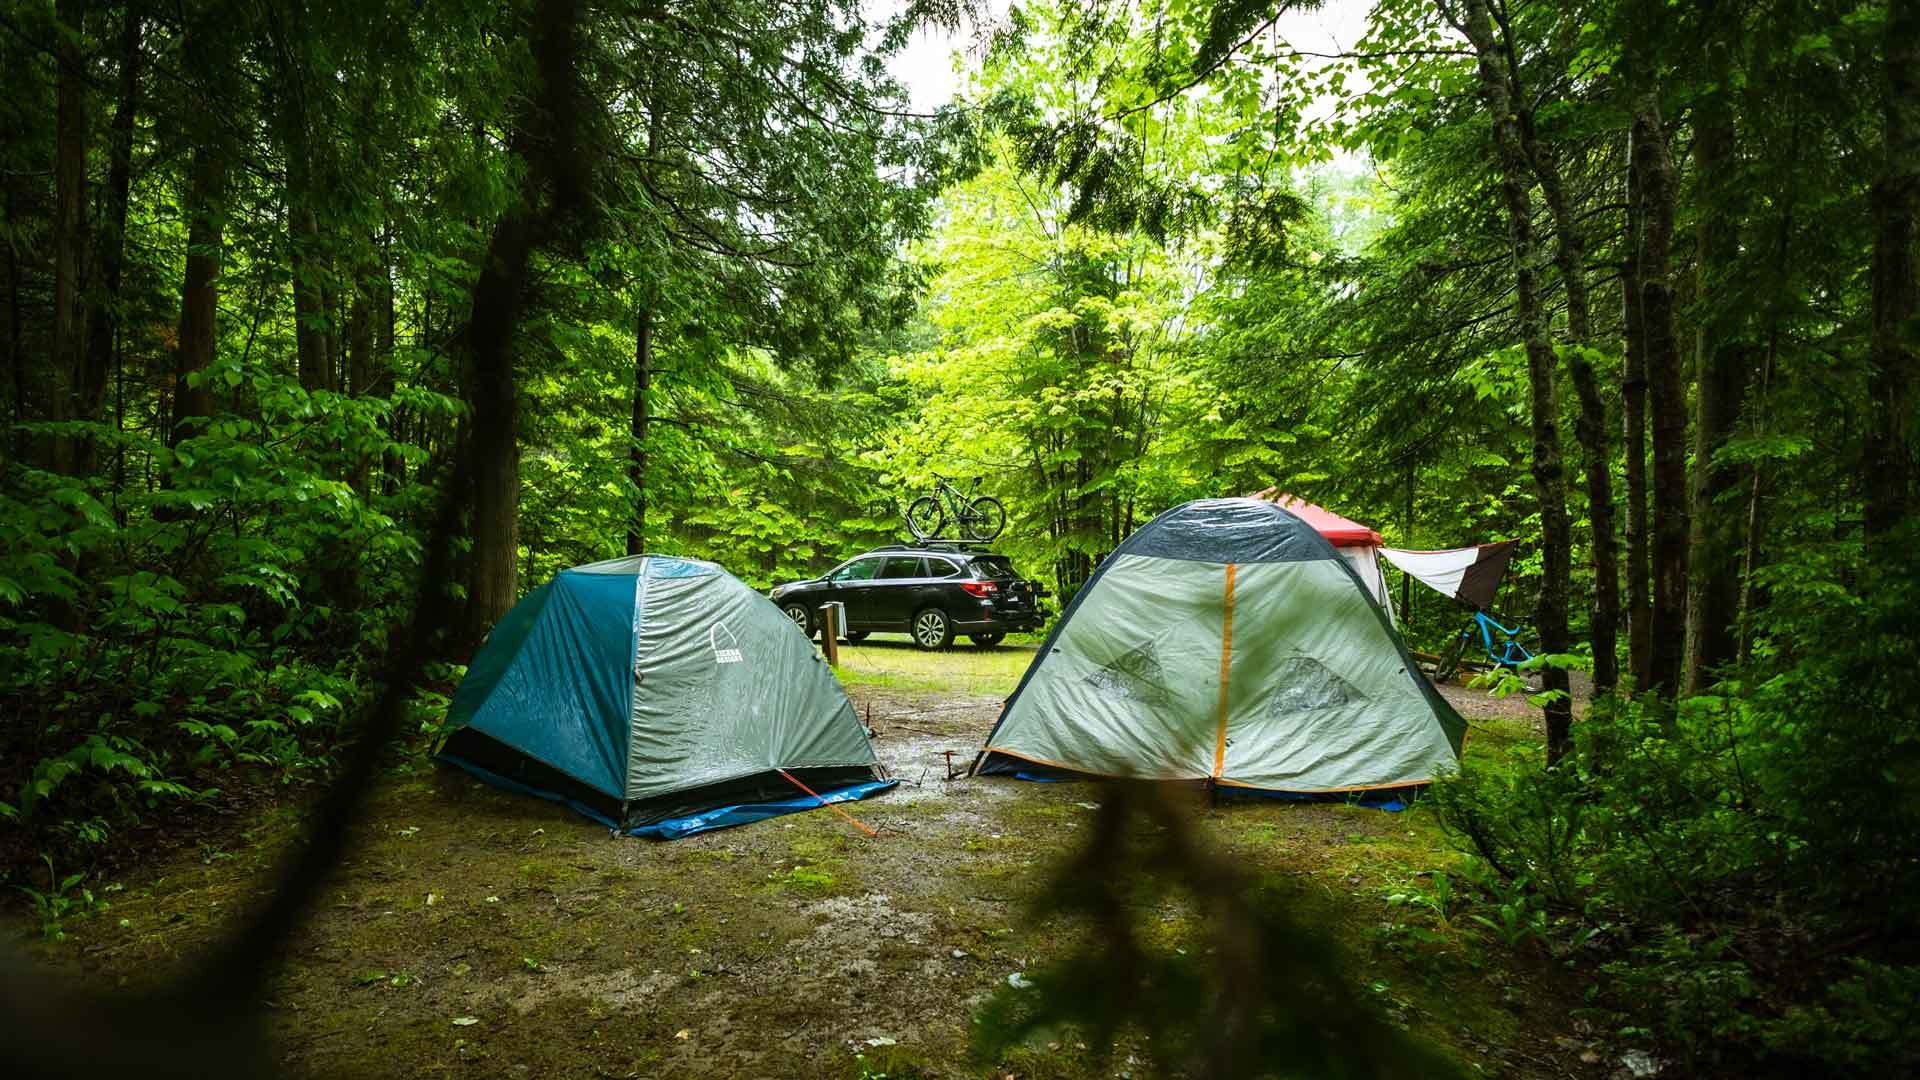 Why-You-Should-Use-Pop-Up-Tents-While-Camping-on-99insight